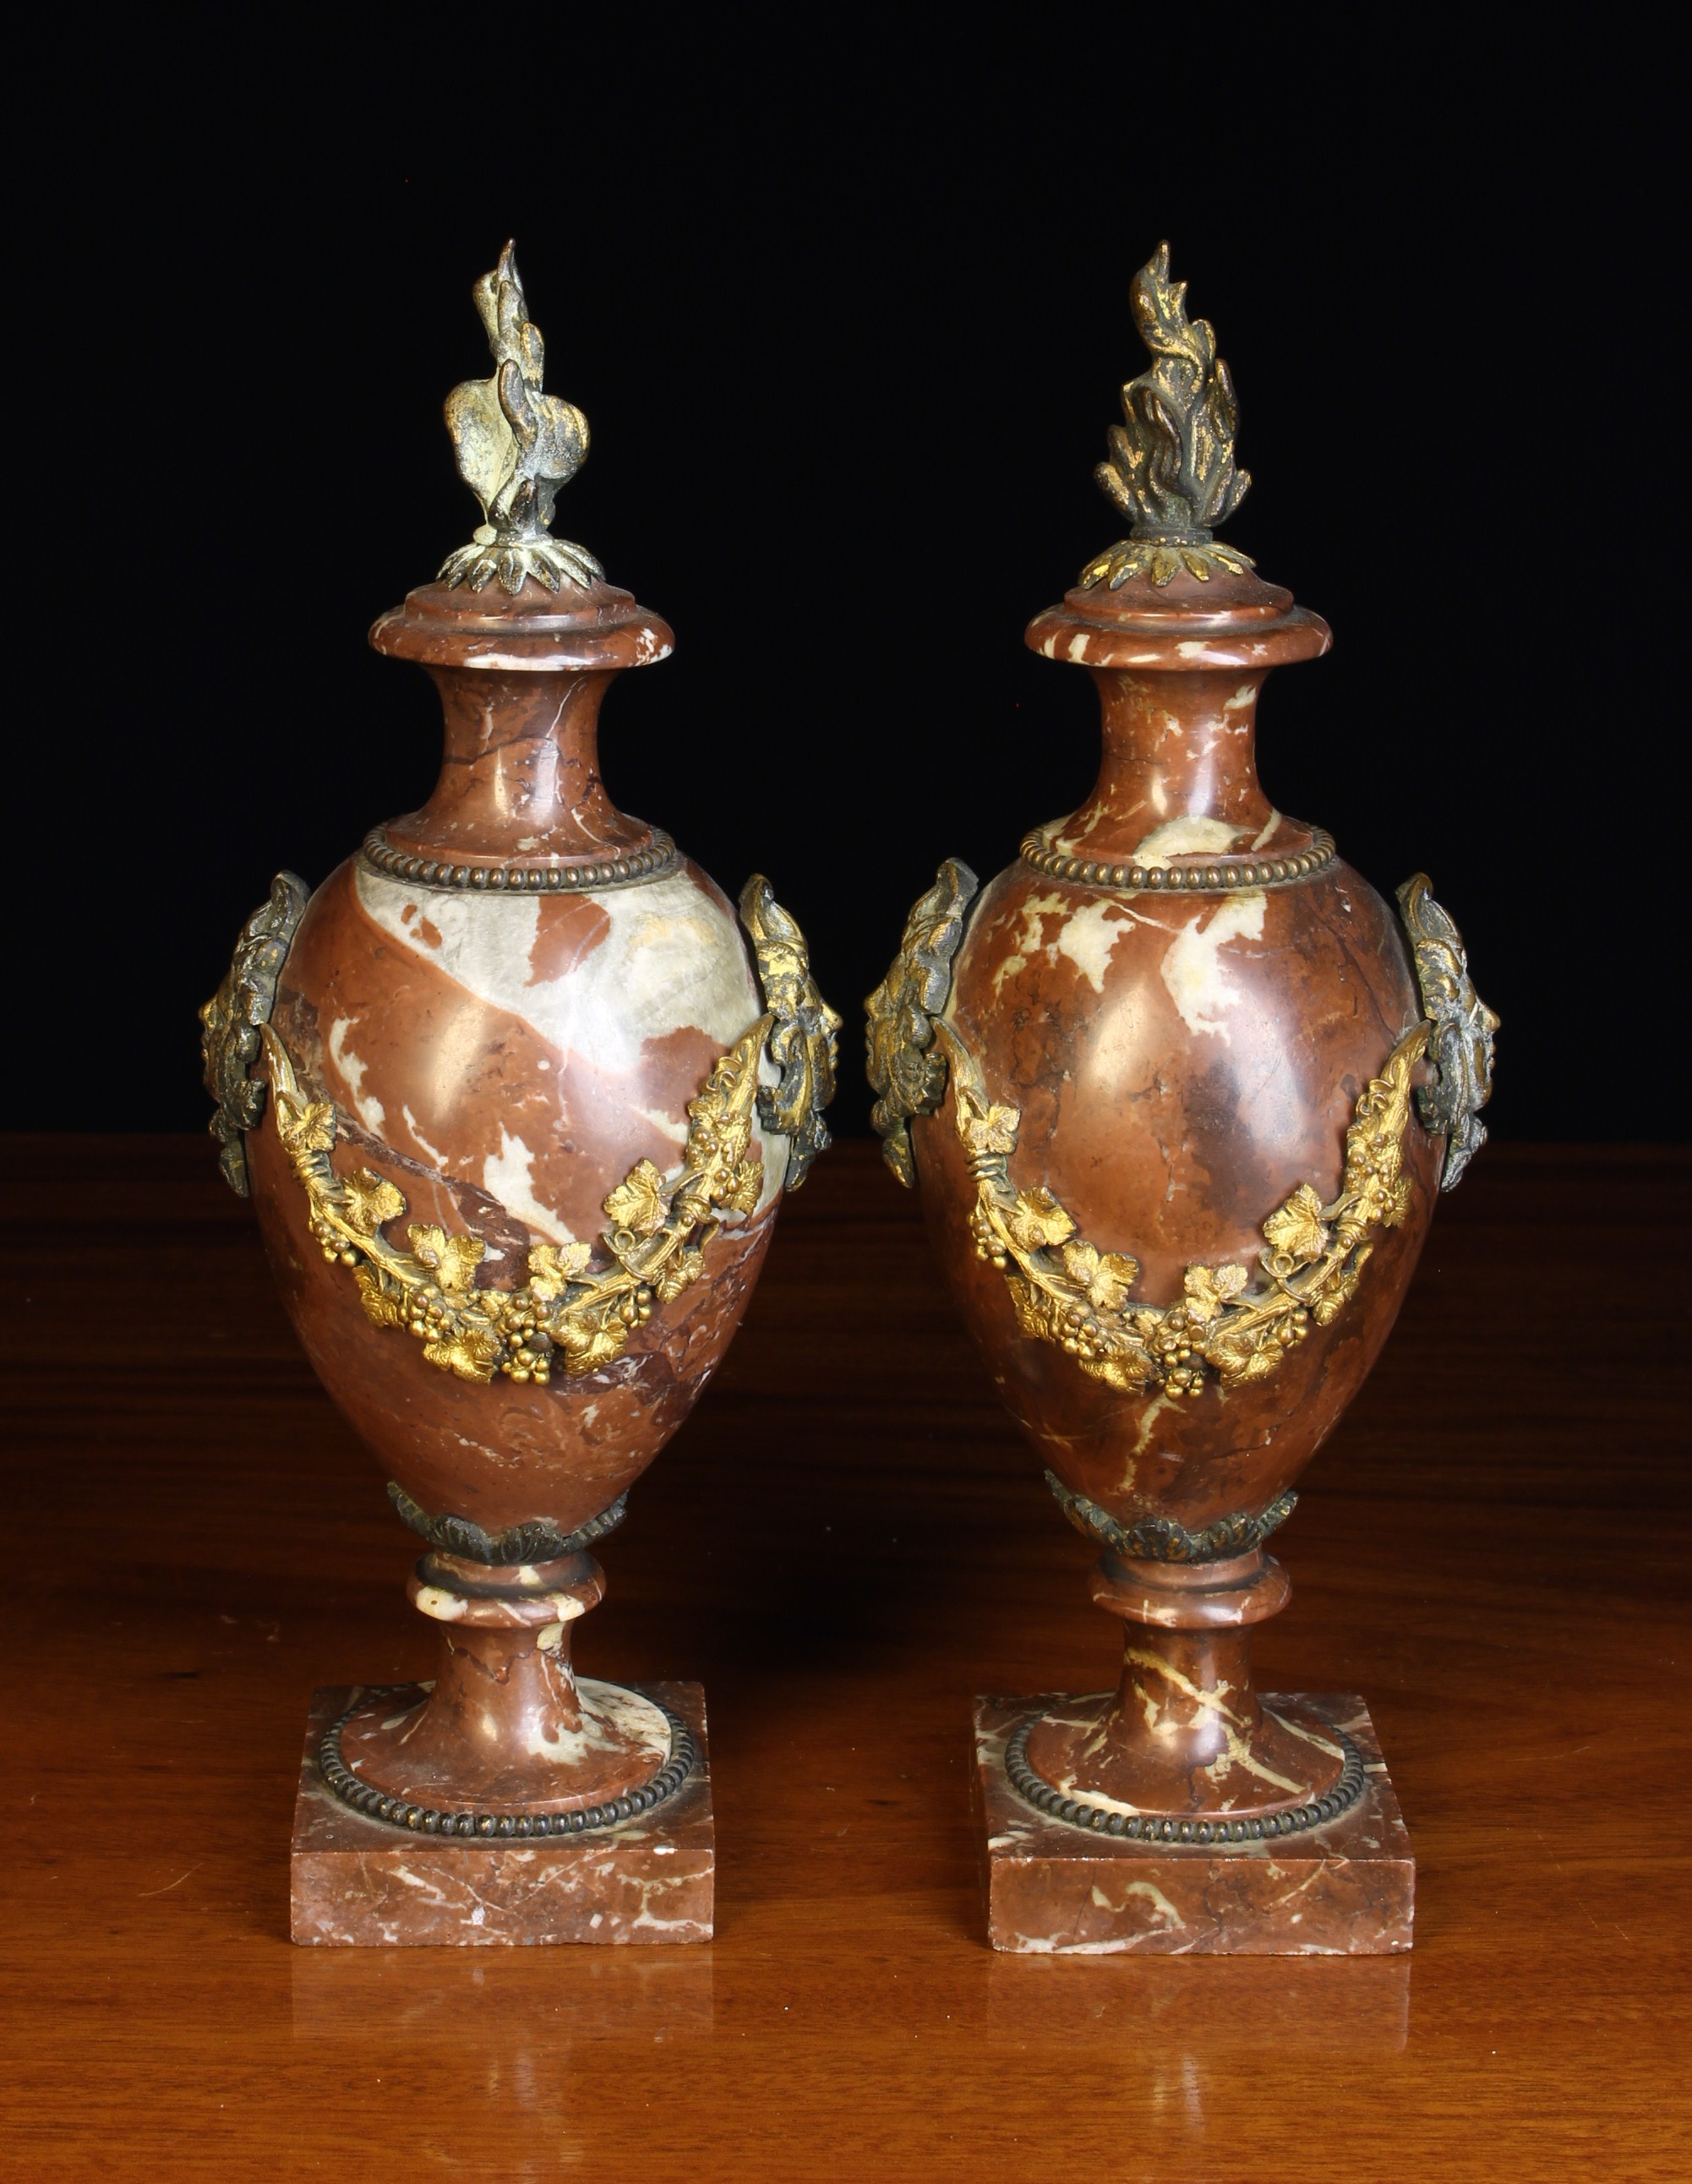 A Pair of Small 19th Century Rouge Marble Cassolettes with gilt metal mounts.